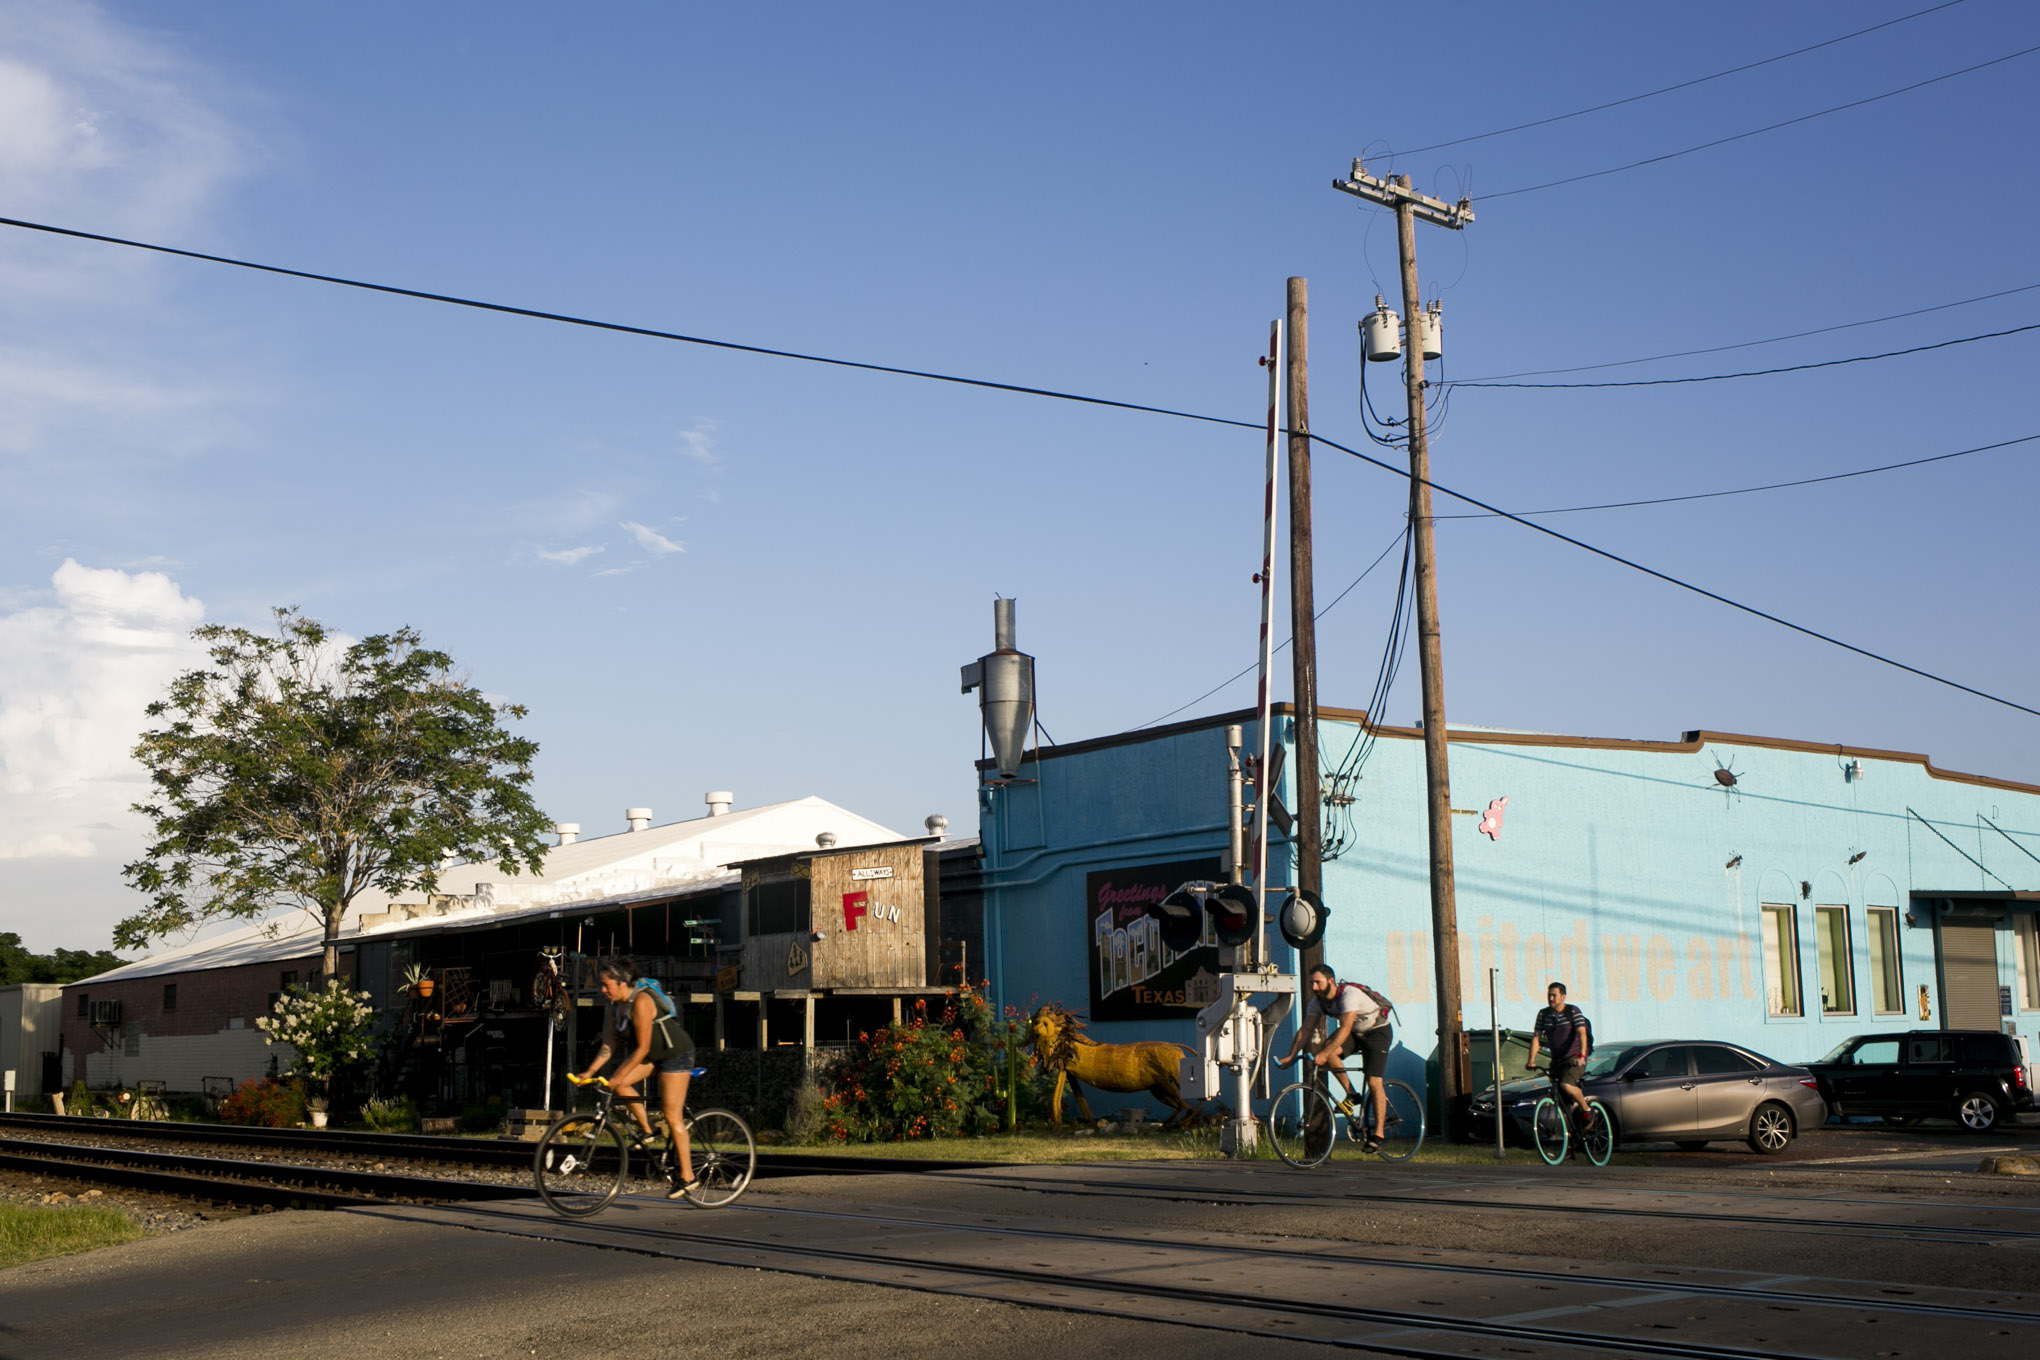 Bikers headed to the bike collective on South Flores Street.